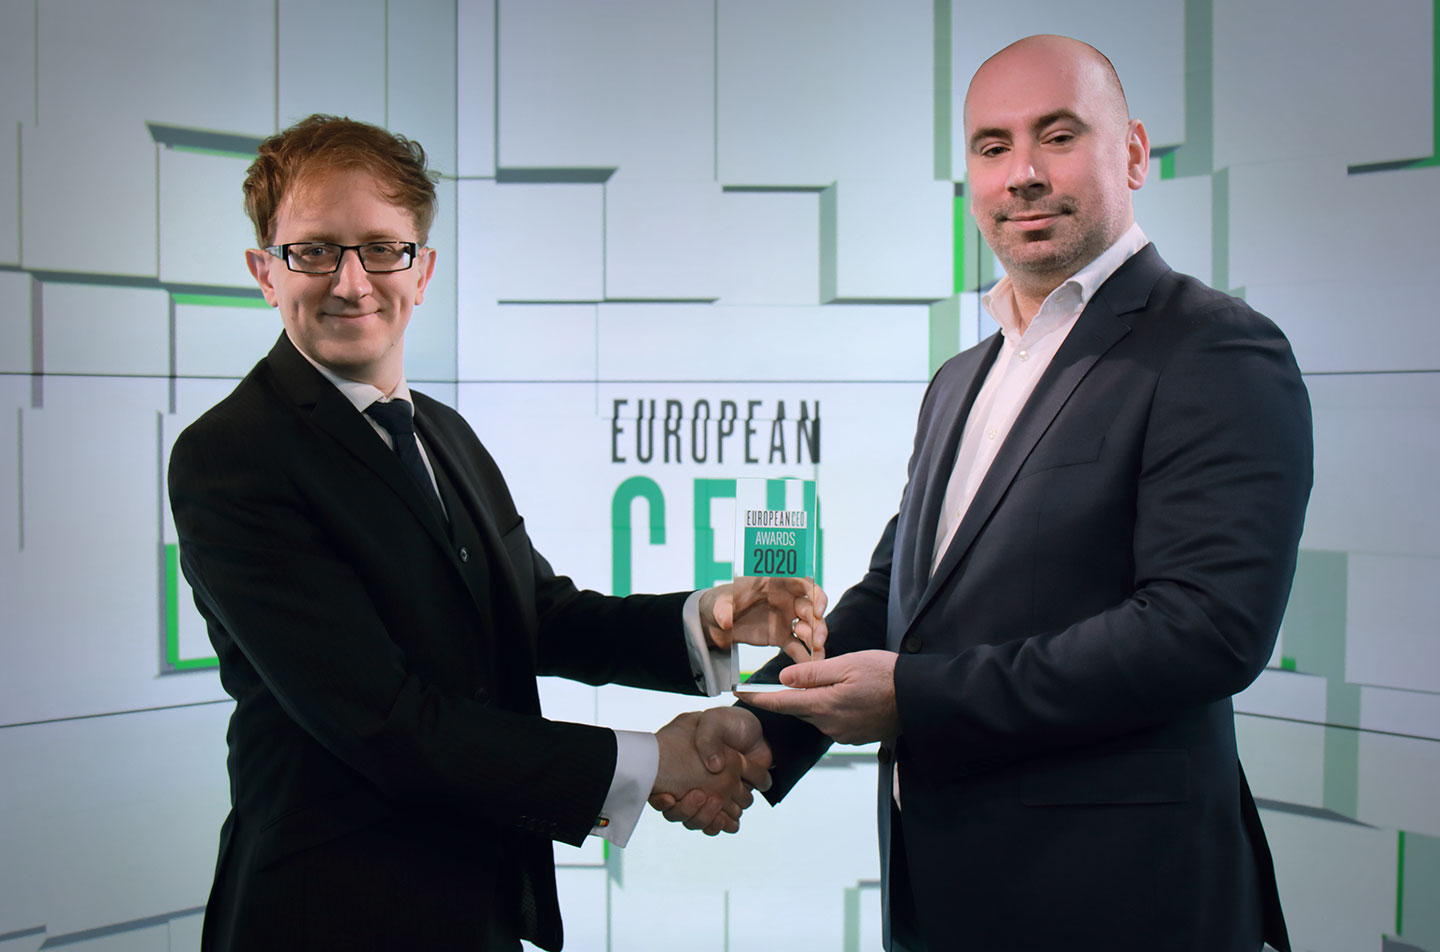 El CMO de Libertex recibe el premio European CEO Awards